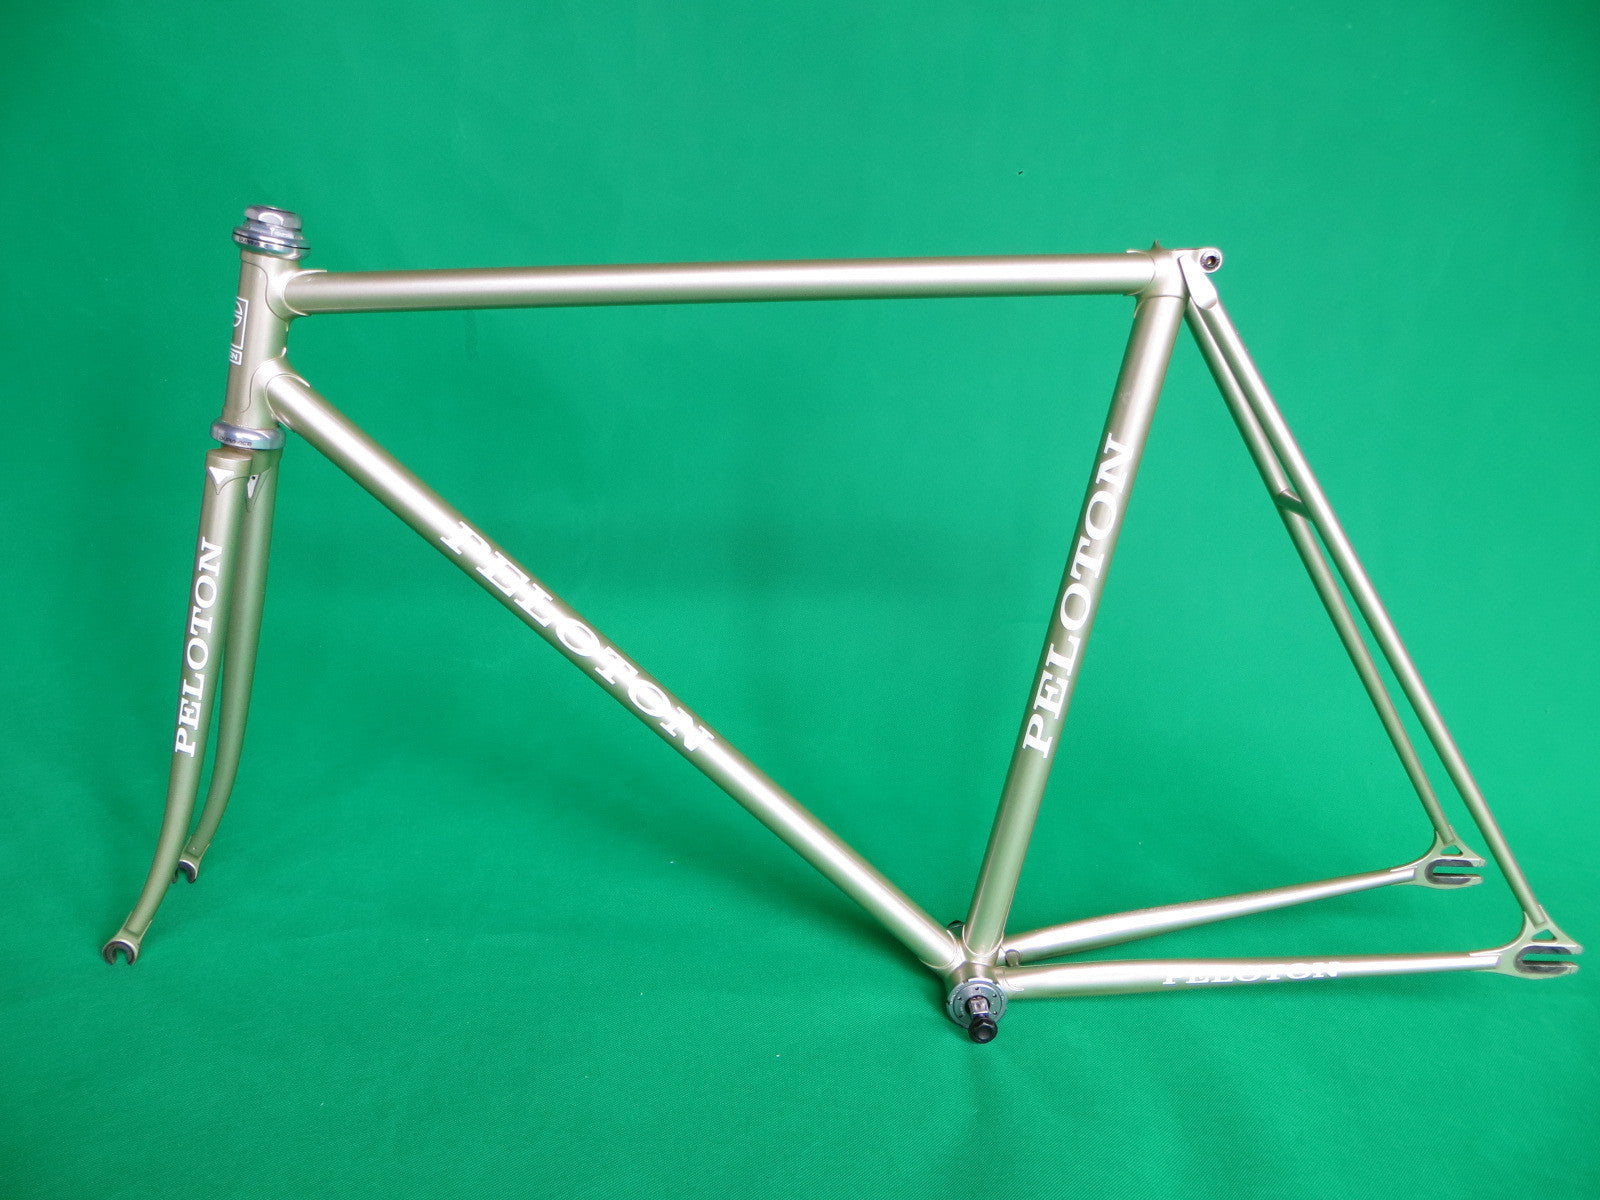 Peloton // Goldish-Silver // Sloping // 53cm